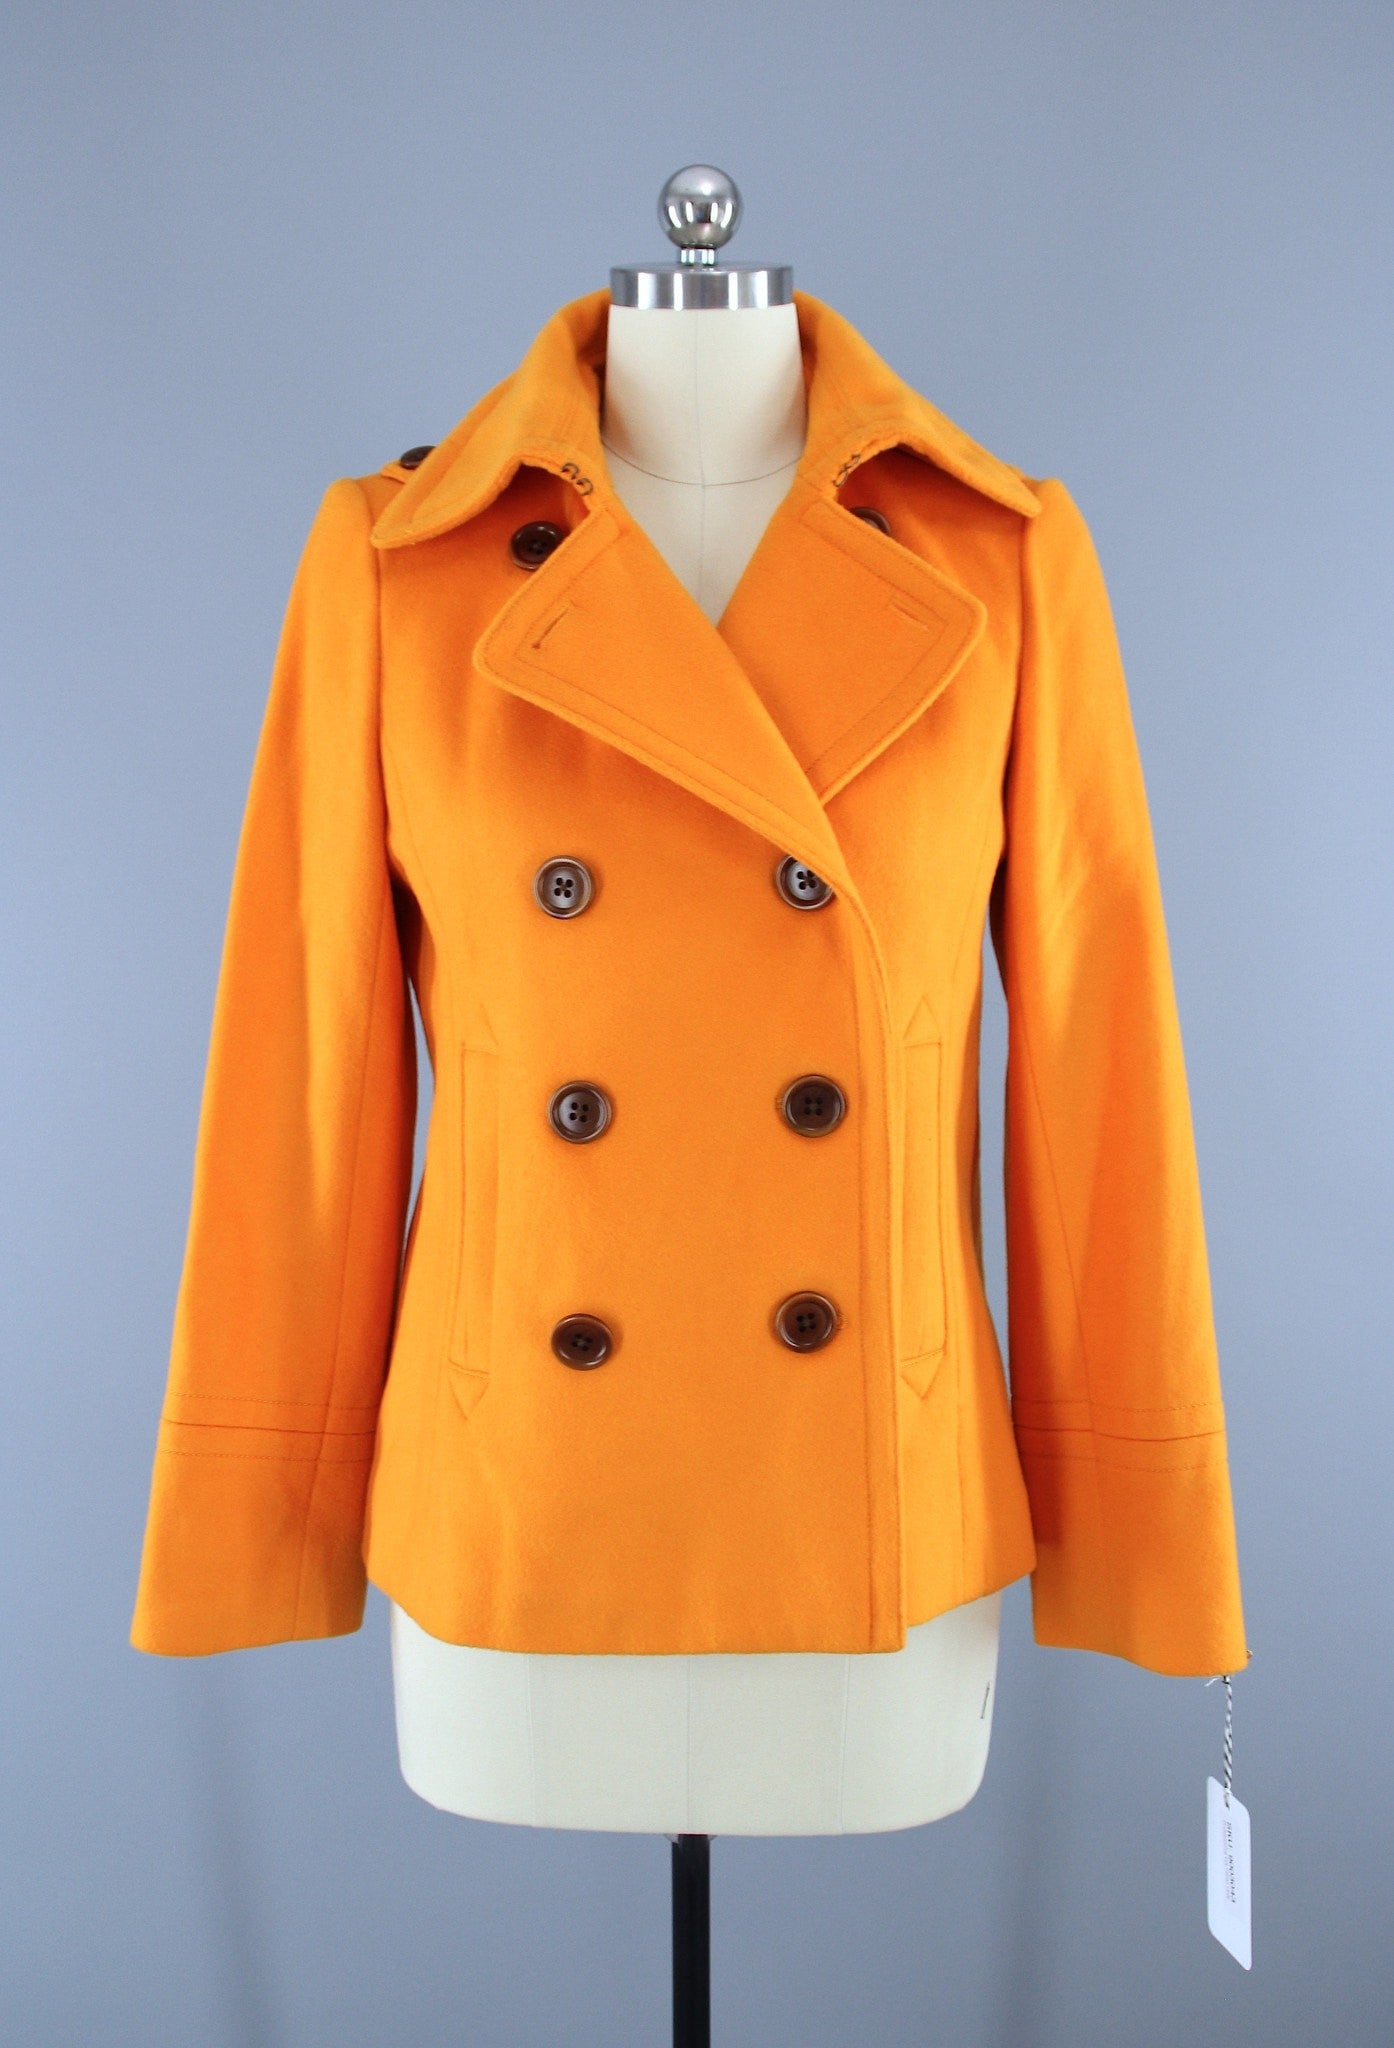 Bright Orange J. Crew Wool Pea Coat / Short Jacket / Size Medium Outerwear ThisBlueBird